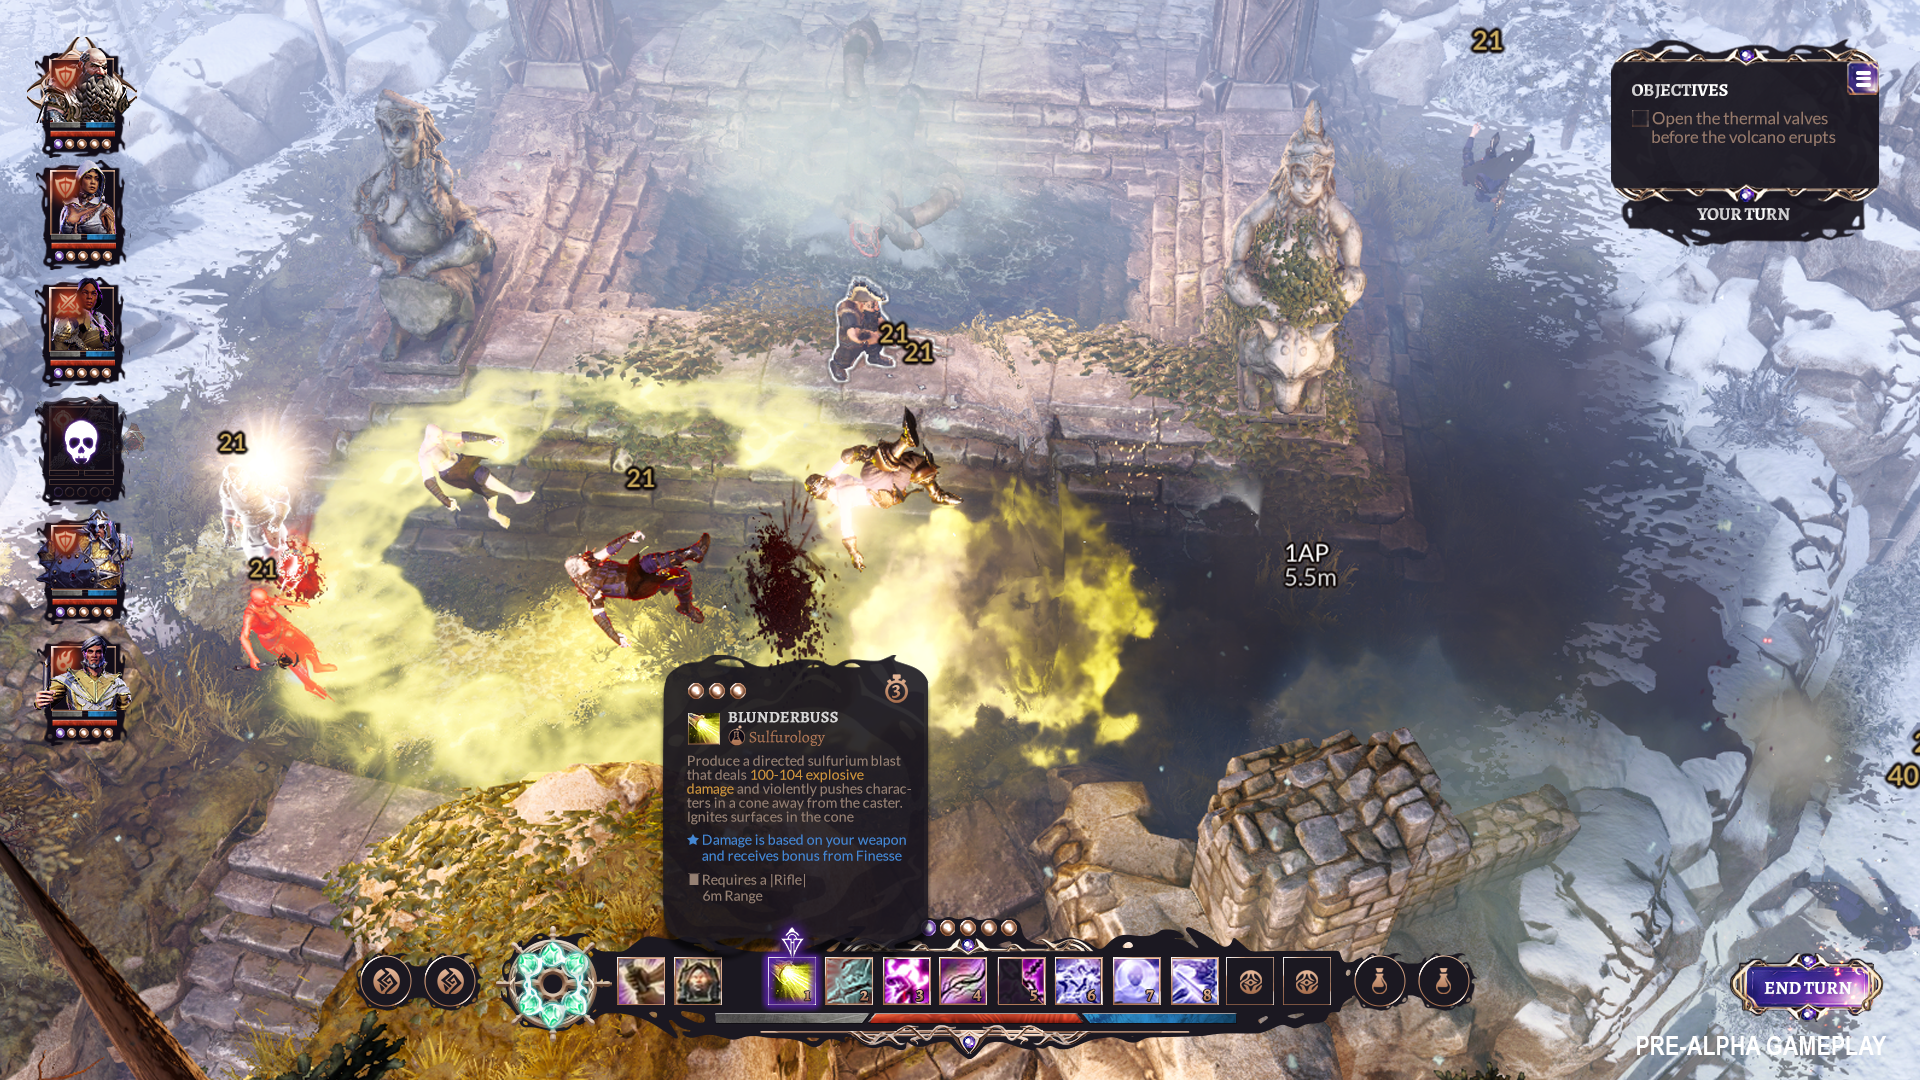 Divinity: Fallen Heroes is a new Divinity tactics game with co-op